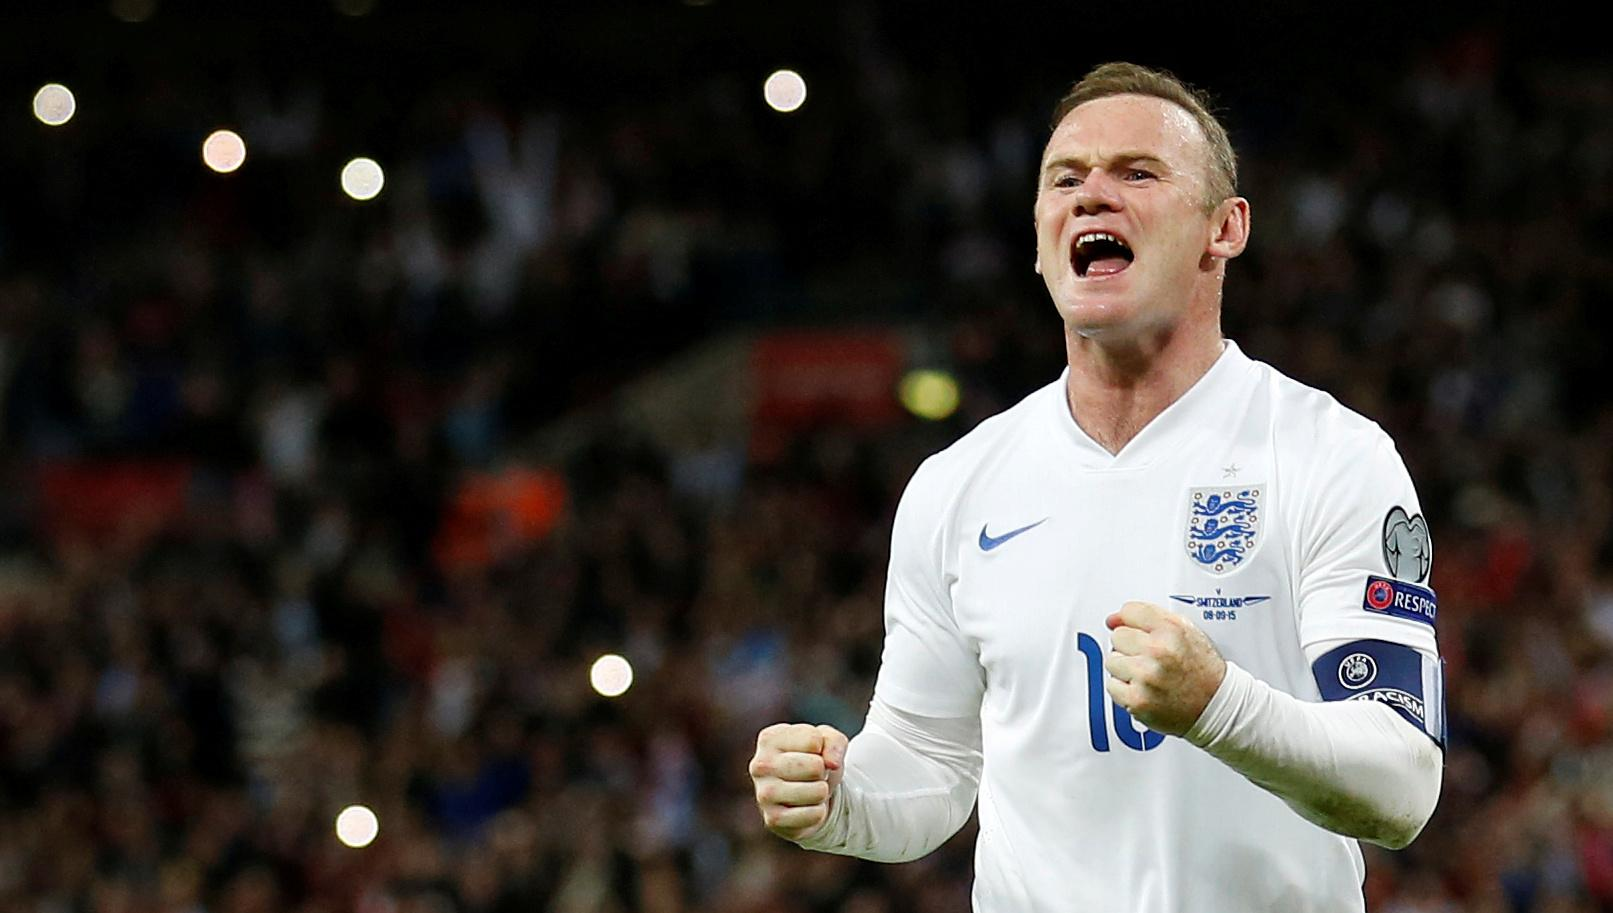 Soccer: Rooney to make England farewell in one-off international friendly